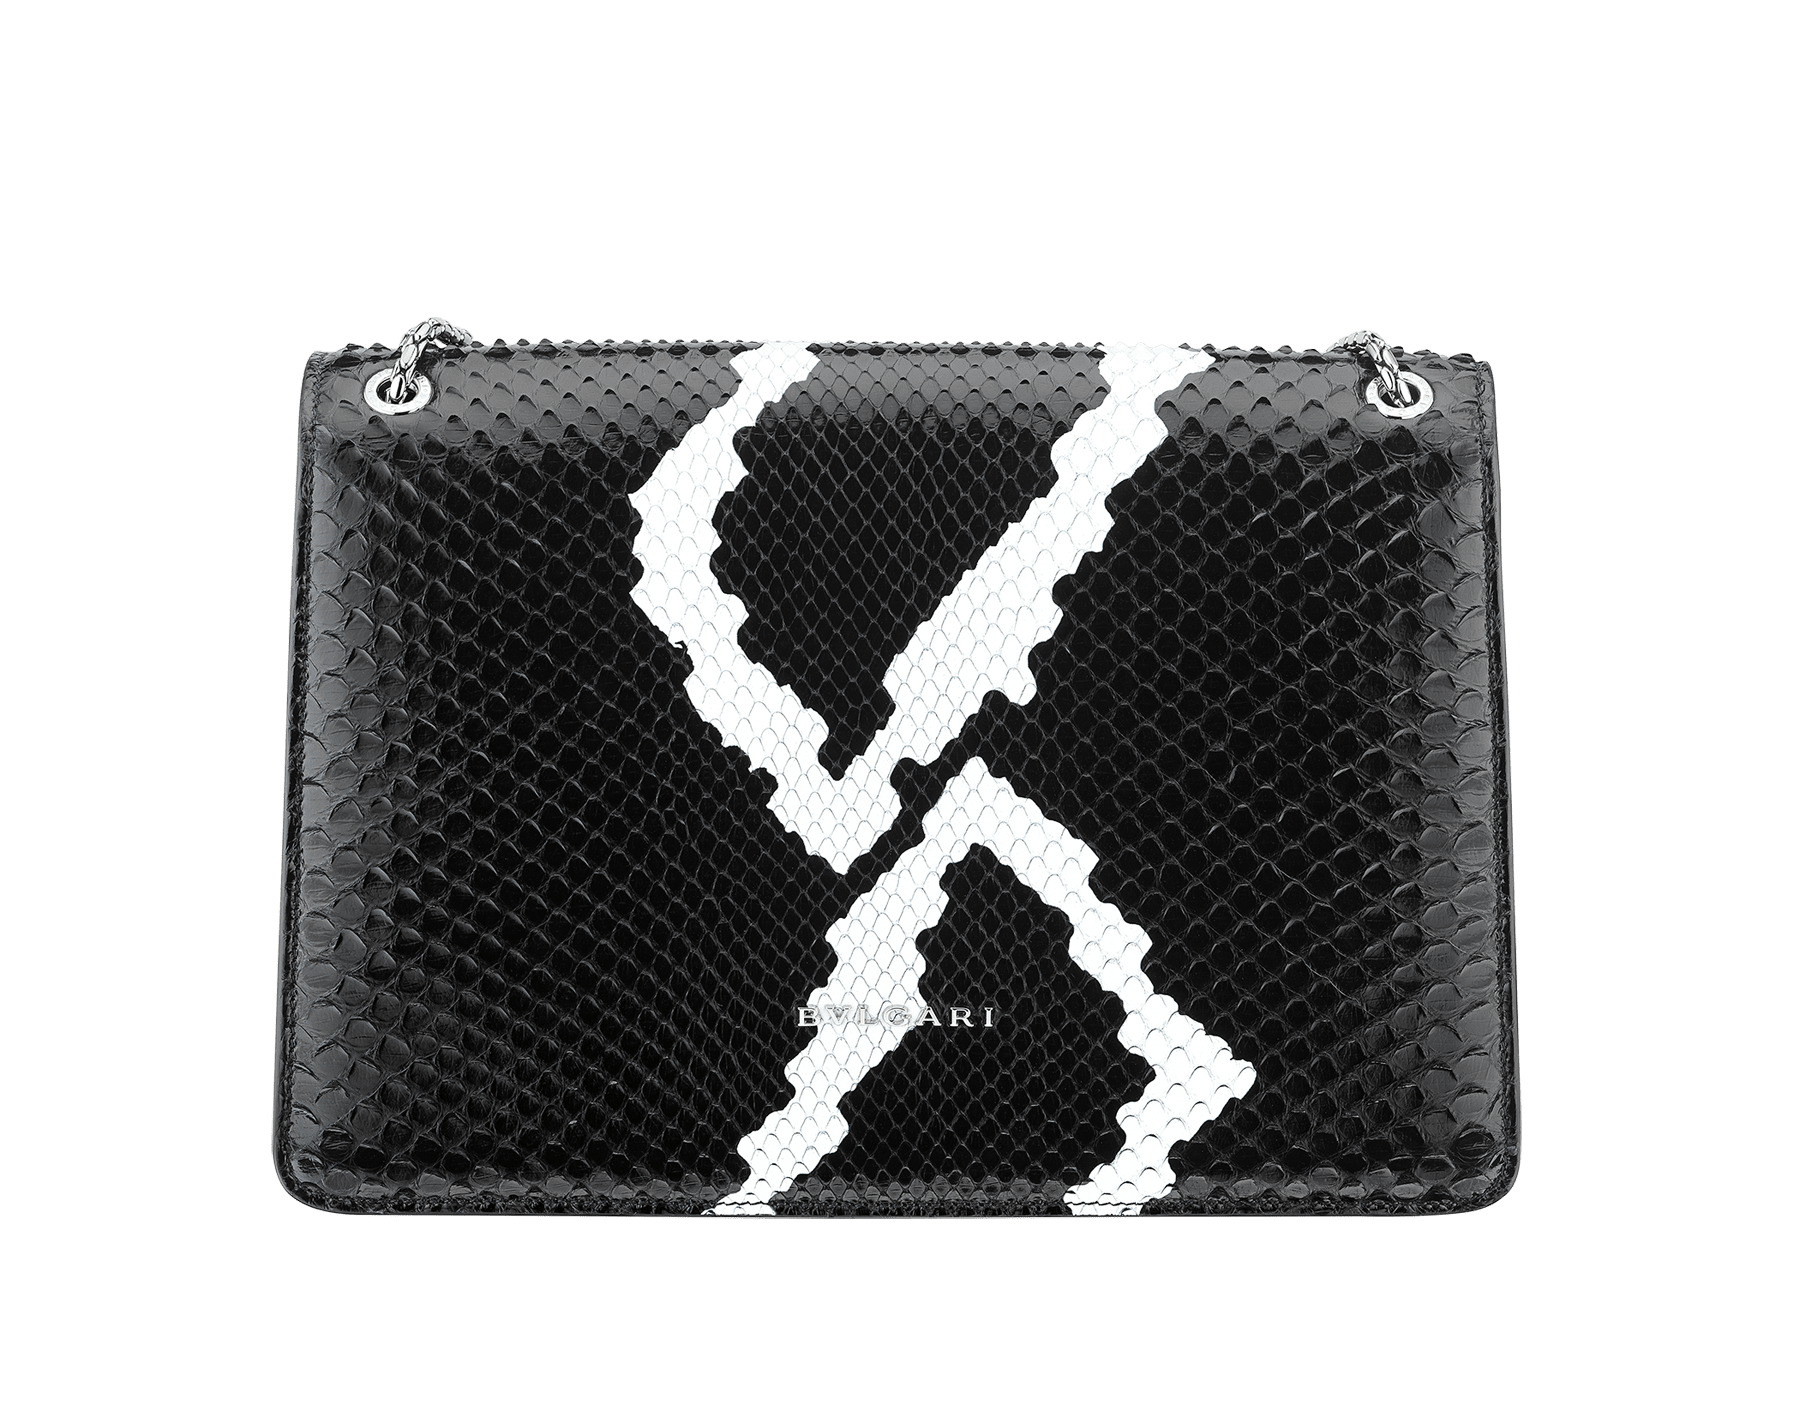 Serpenti Forever shoulder bag in black and white python skin with Whitethunder motif. Snakehead closure in shiny palladium plated brass decorated with black enamel, and black onyx eyes. 521-Pb image 3